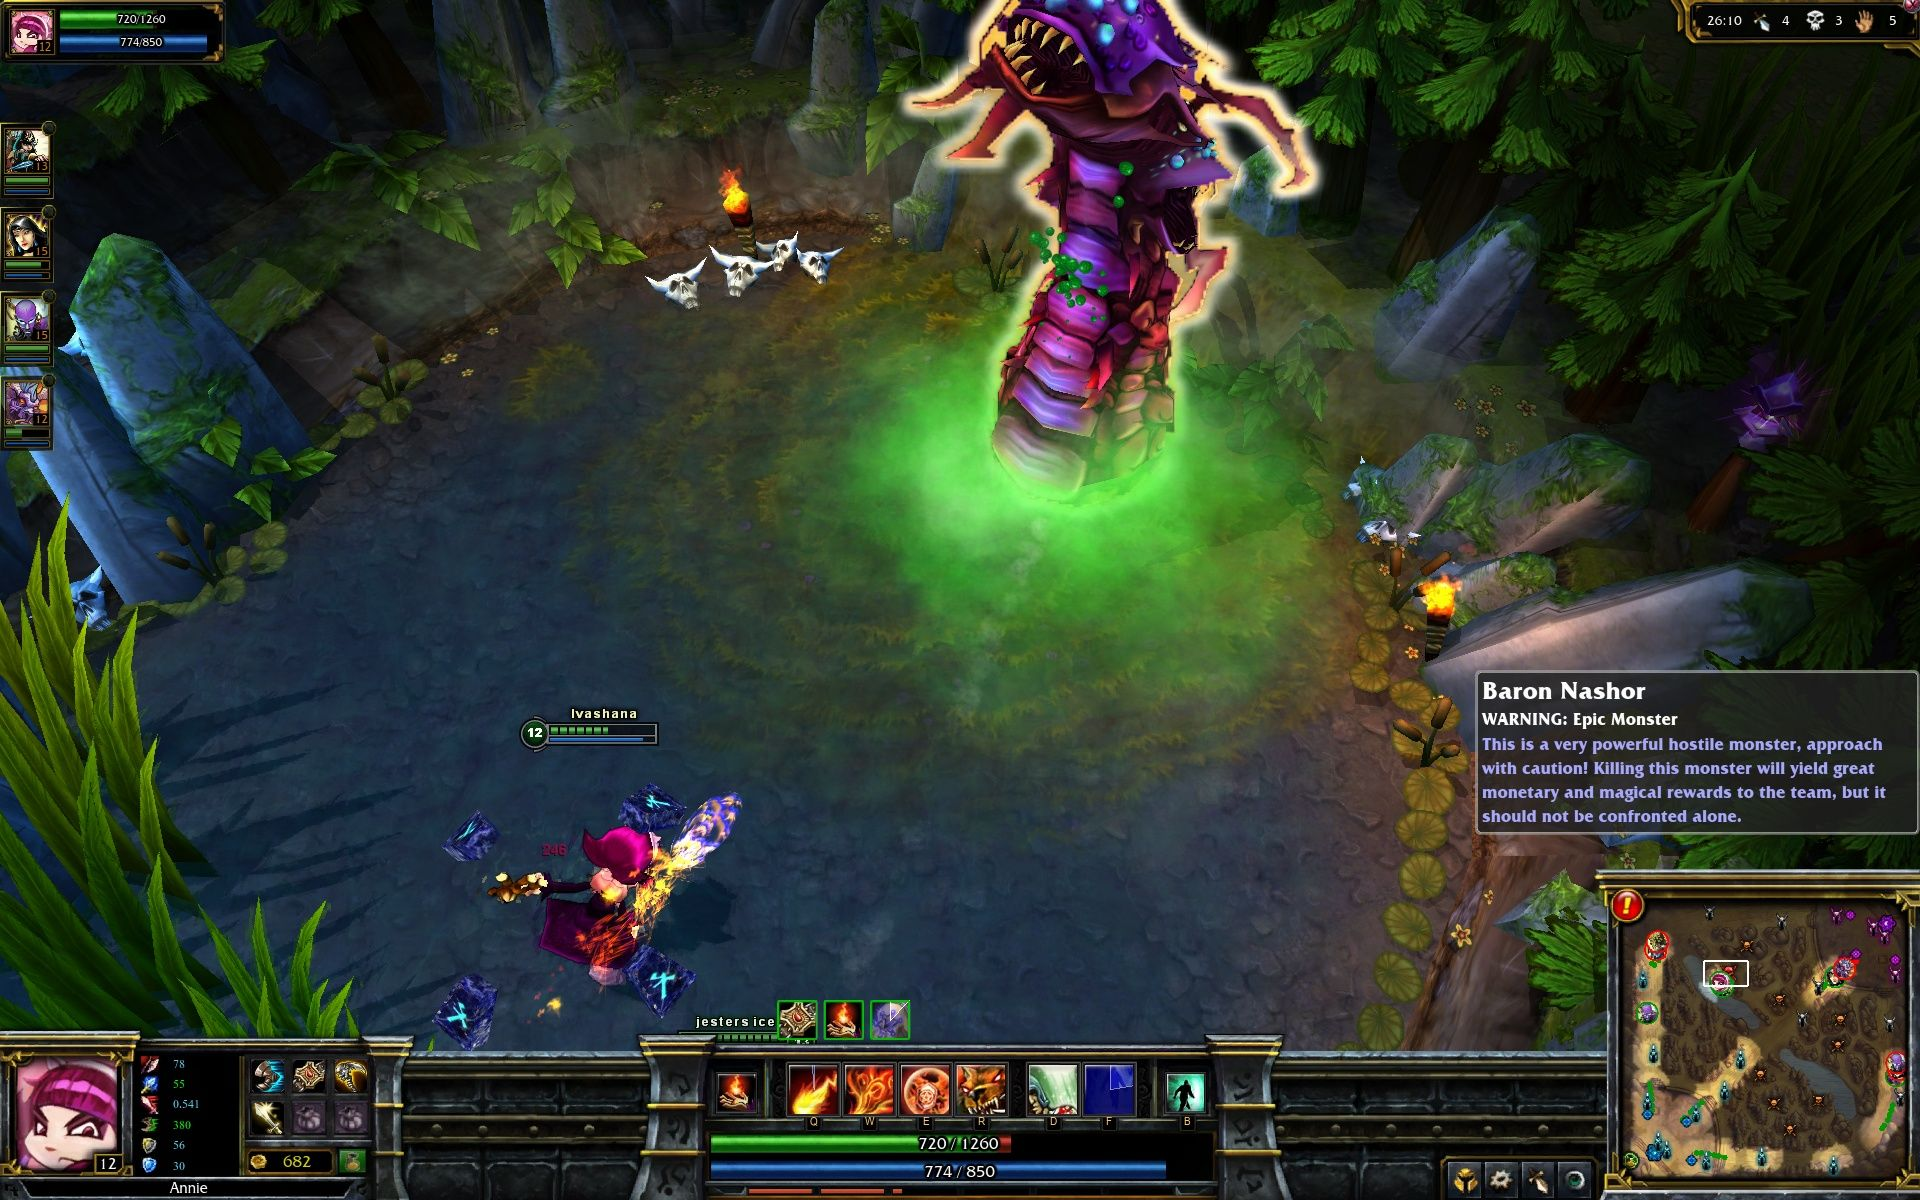 how to download league of legends on windows